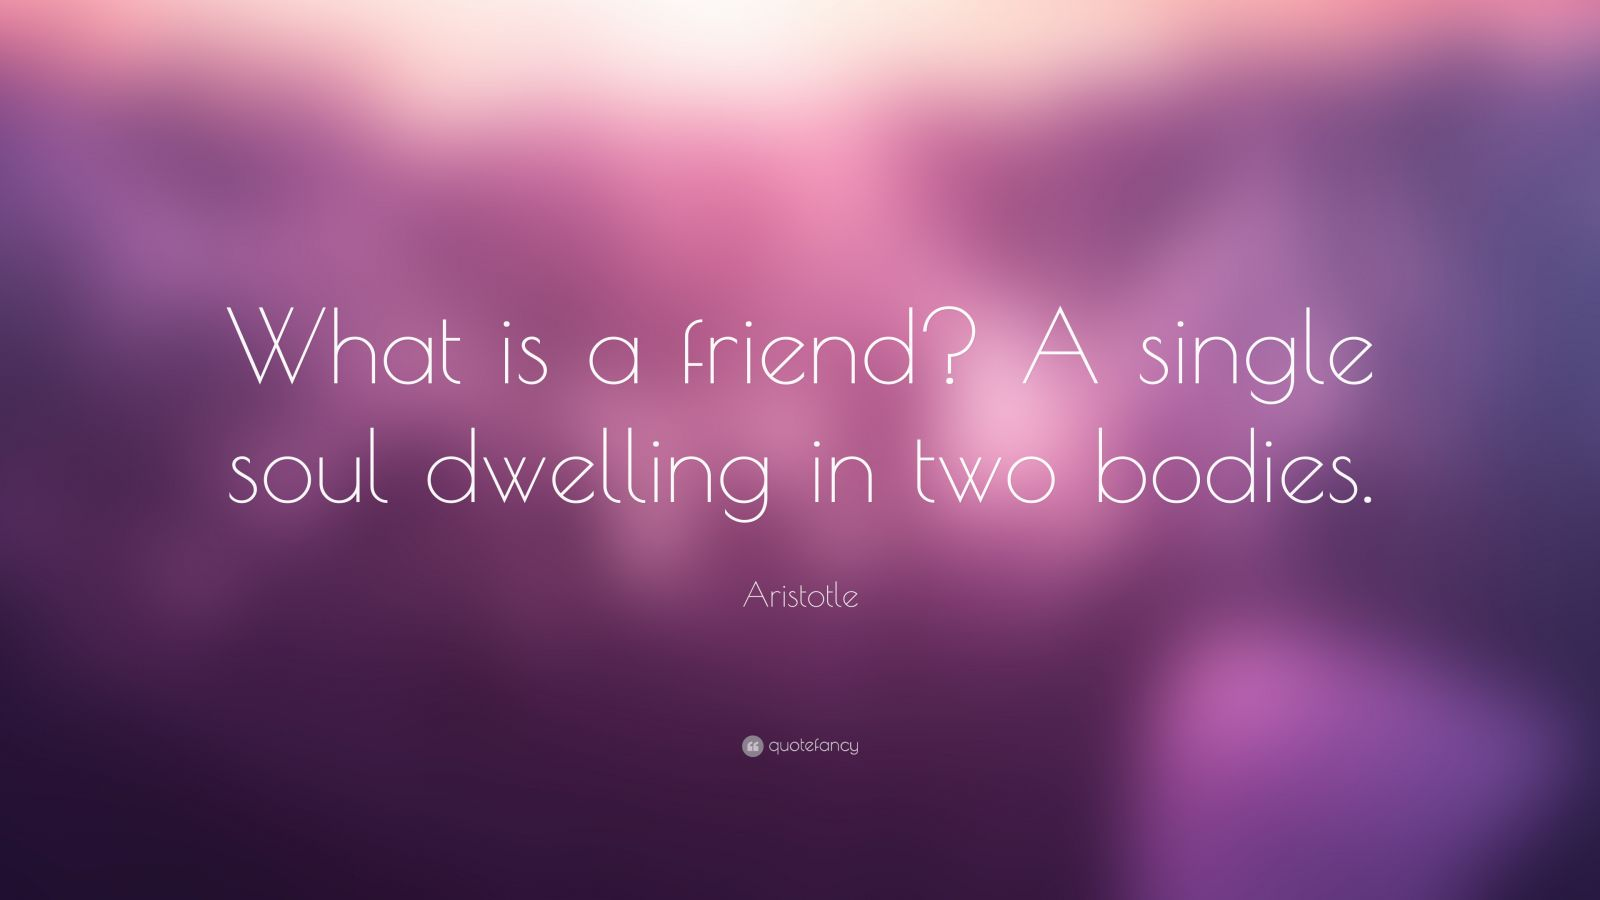 Aristotle Quotes Wallpaper Aristotle Quote What Is A Friend A Single Soul Dwelling